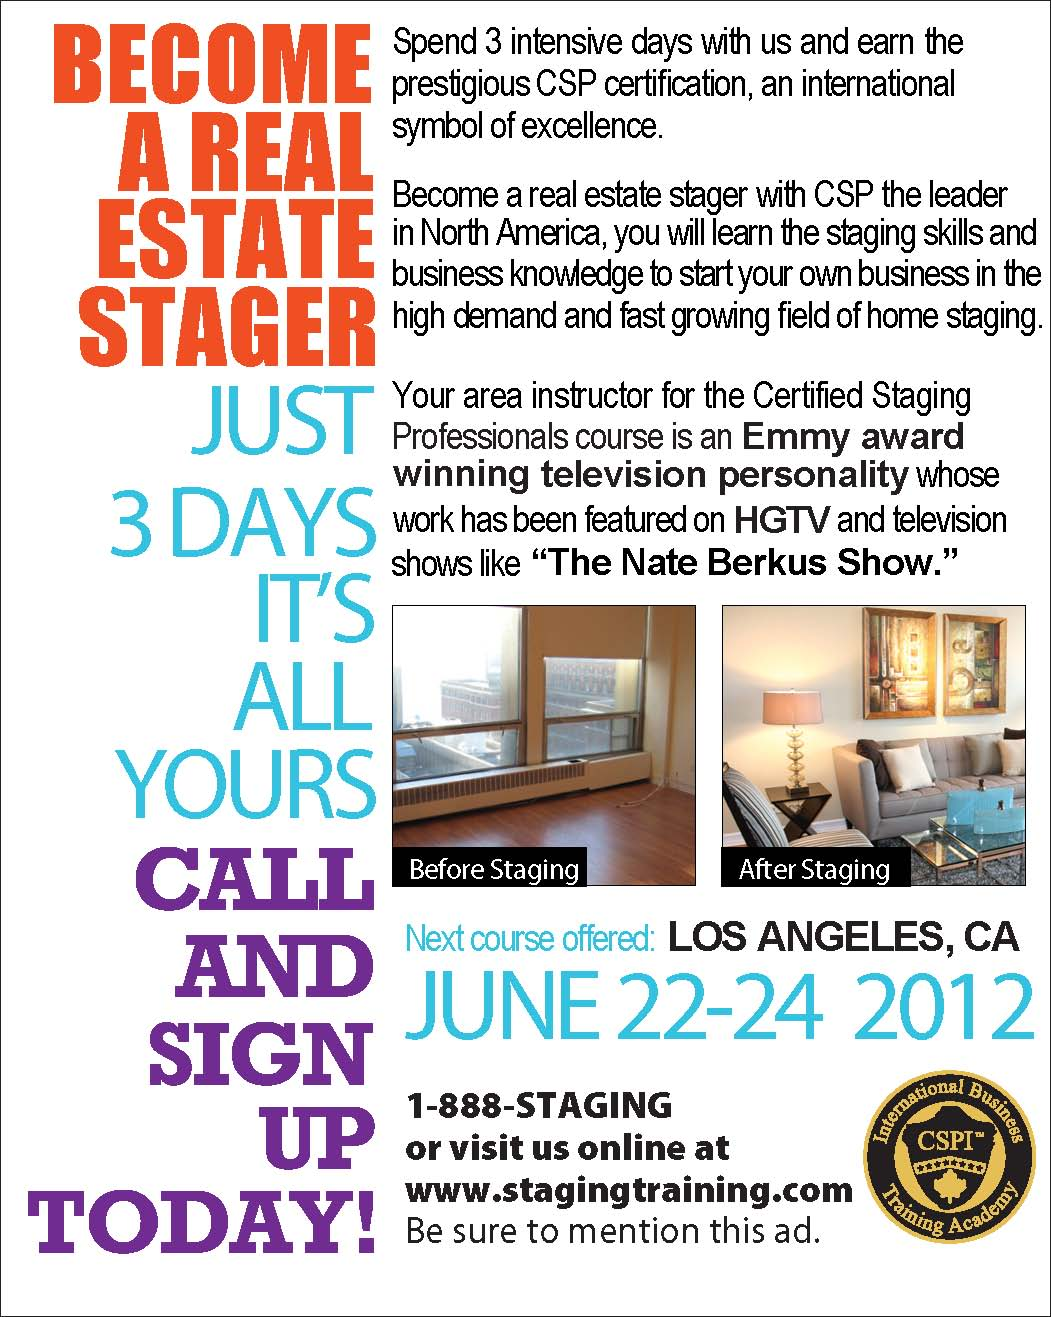 Celebrity Interior Designer Cathy Hobbs Of HGTV Design Star To Teach Home Staging Certification Course In Los Angeles June 22 24th